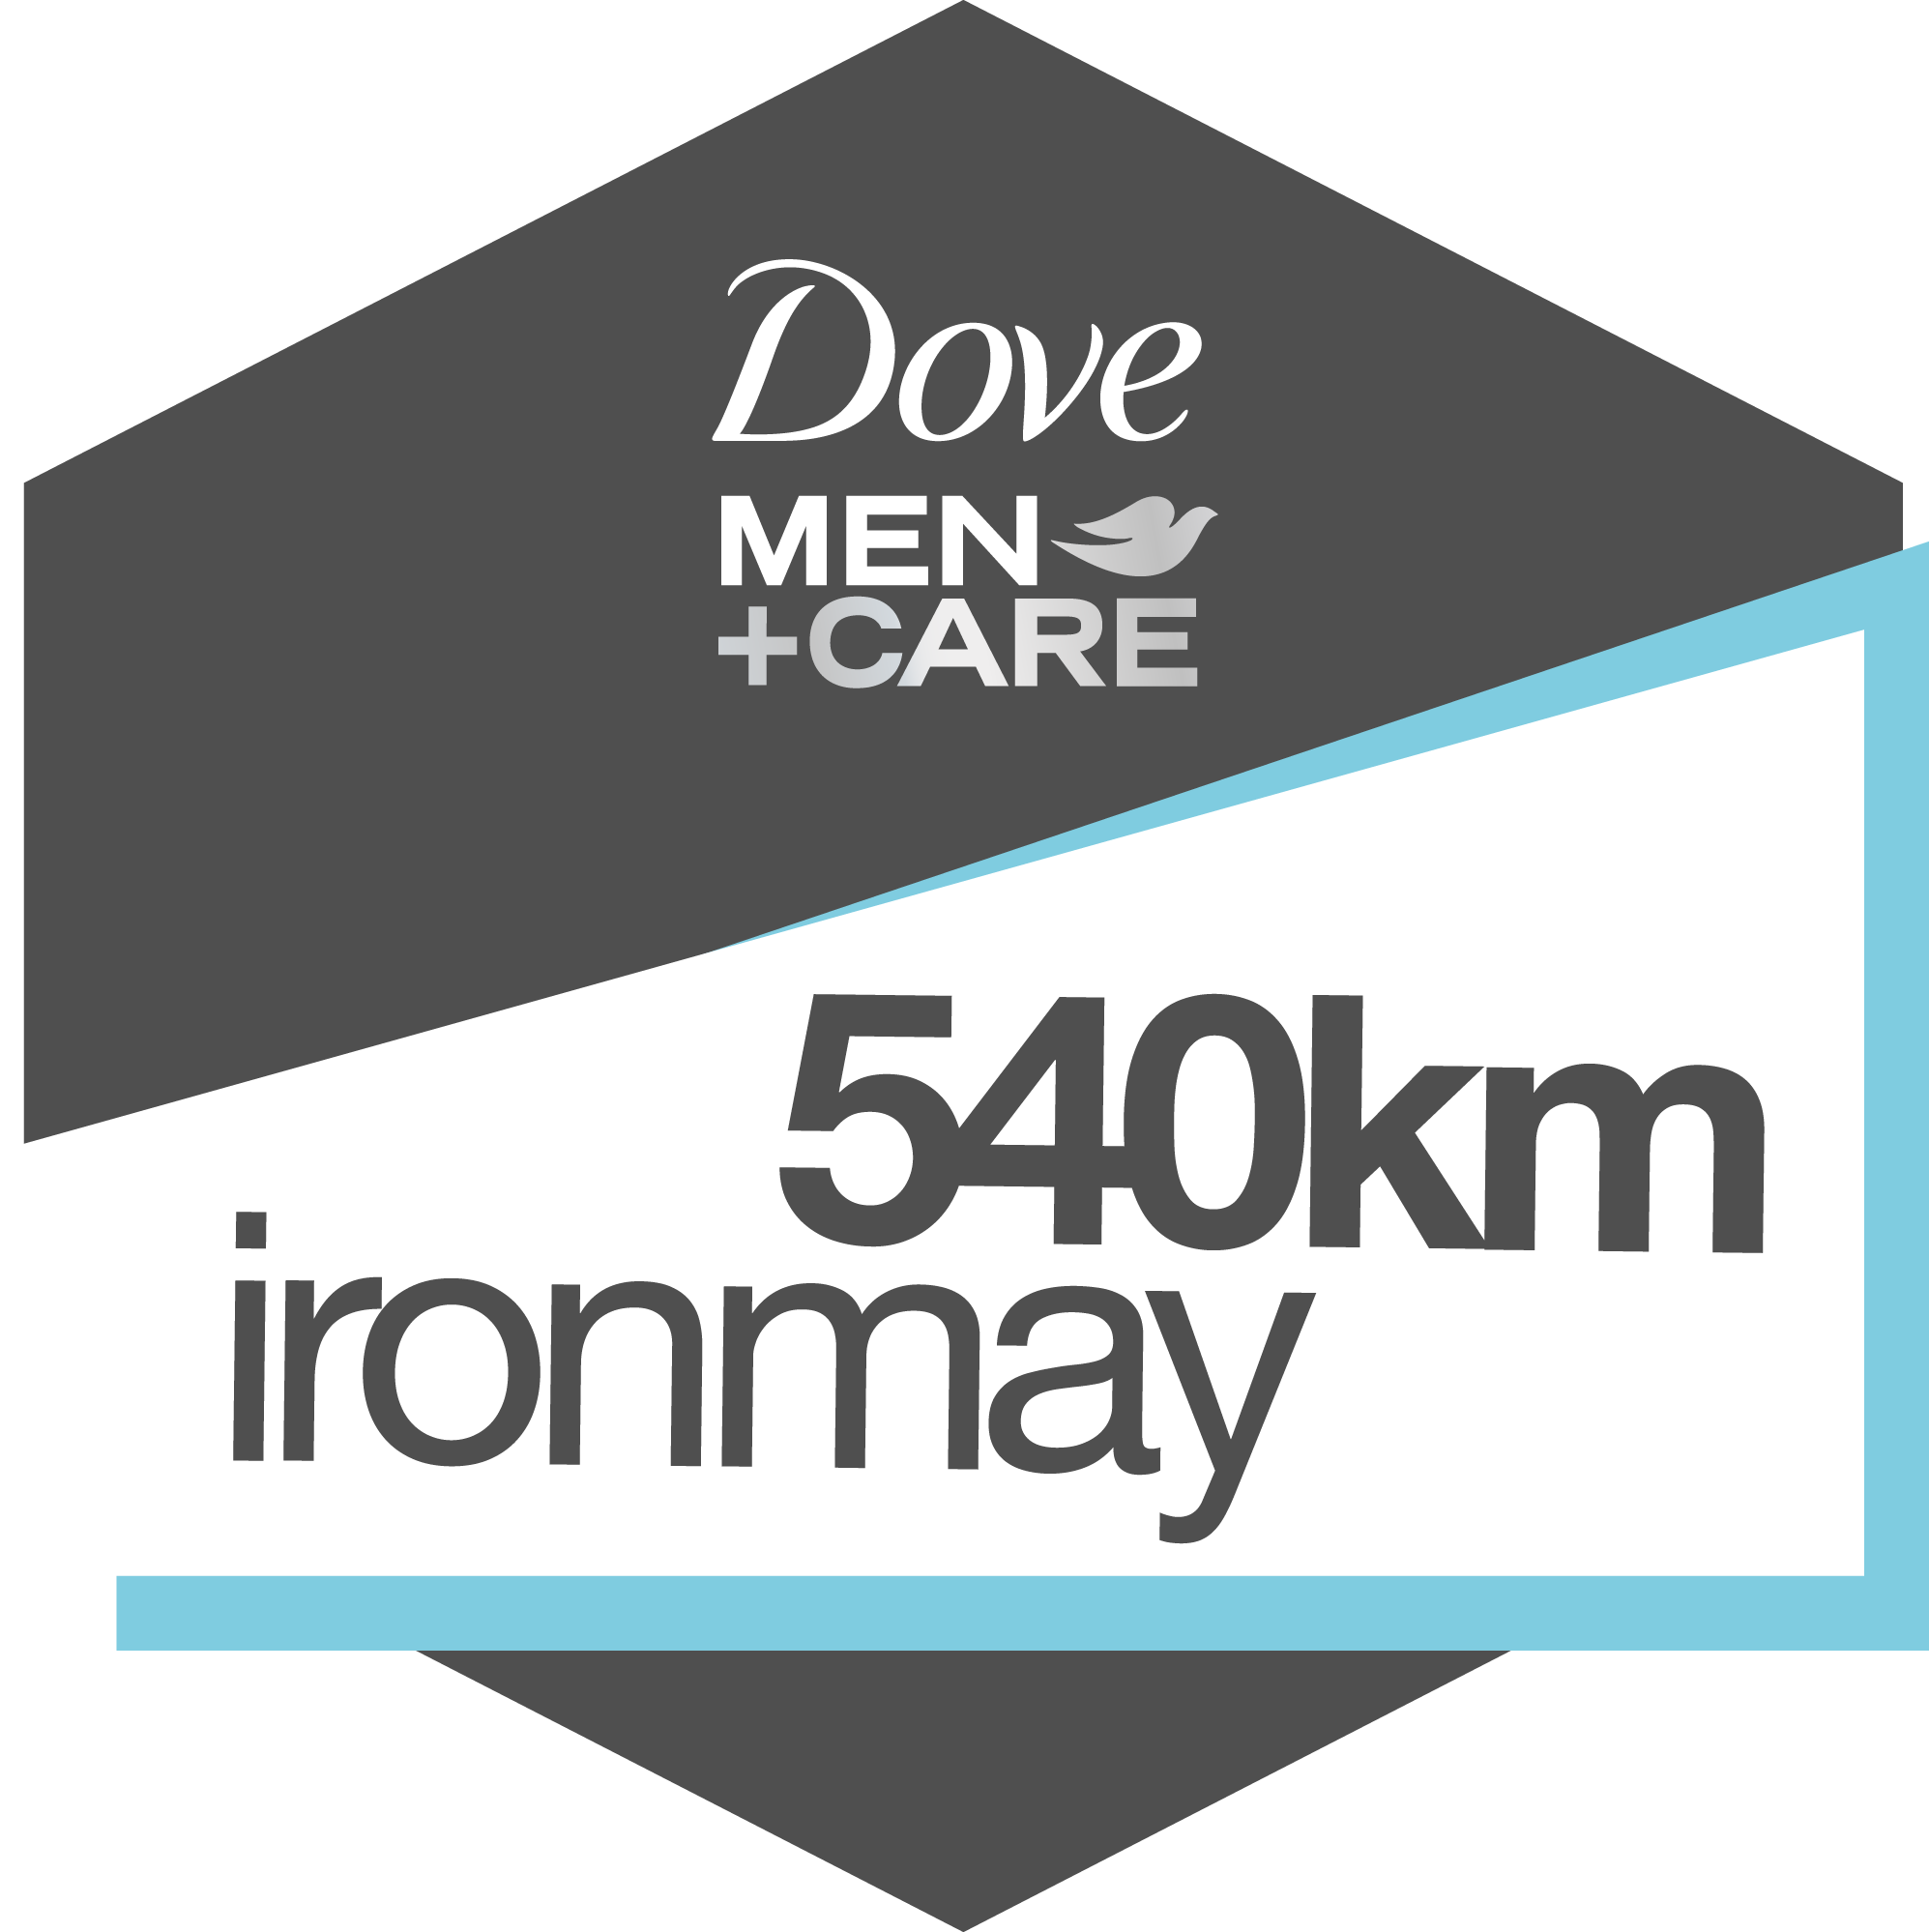 Dove Men+Care IronMay